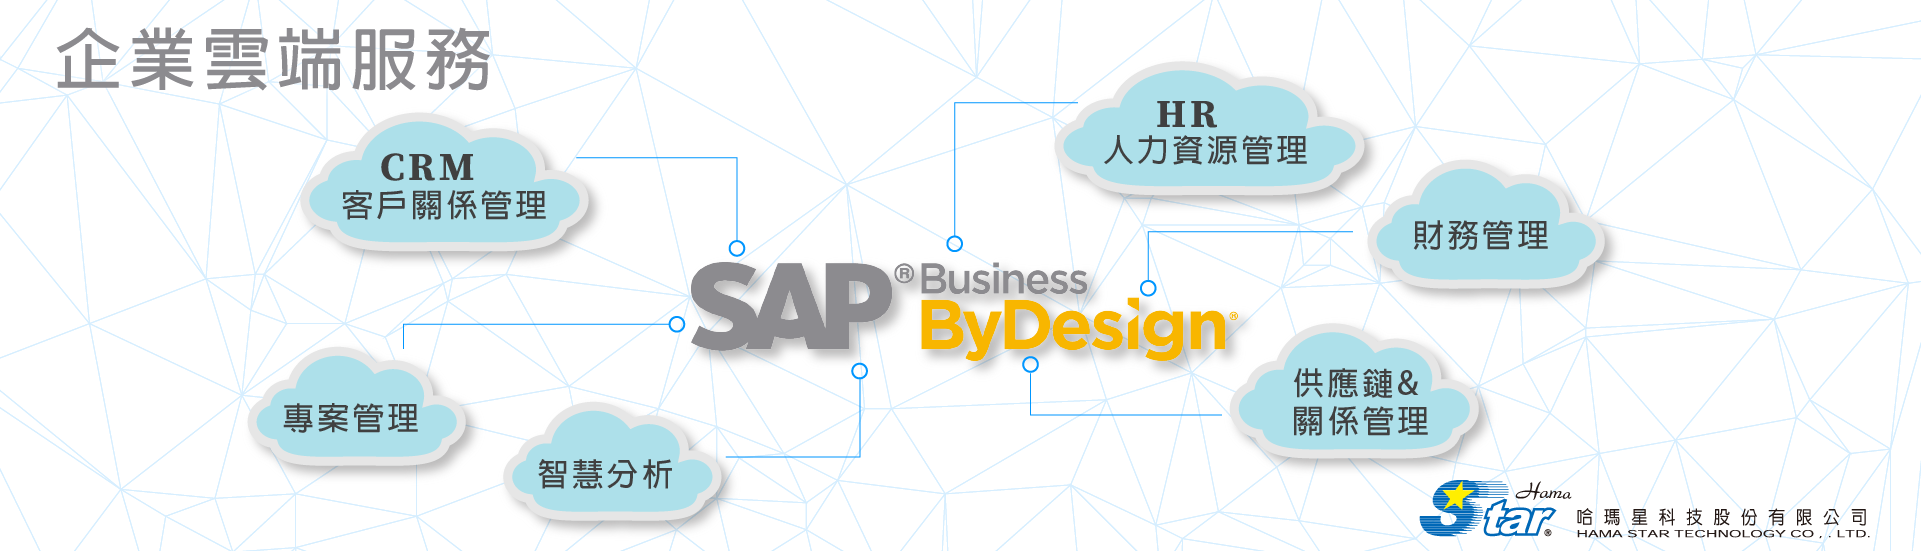 SAP ByDesign